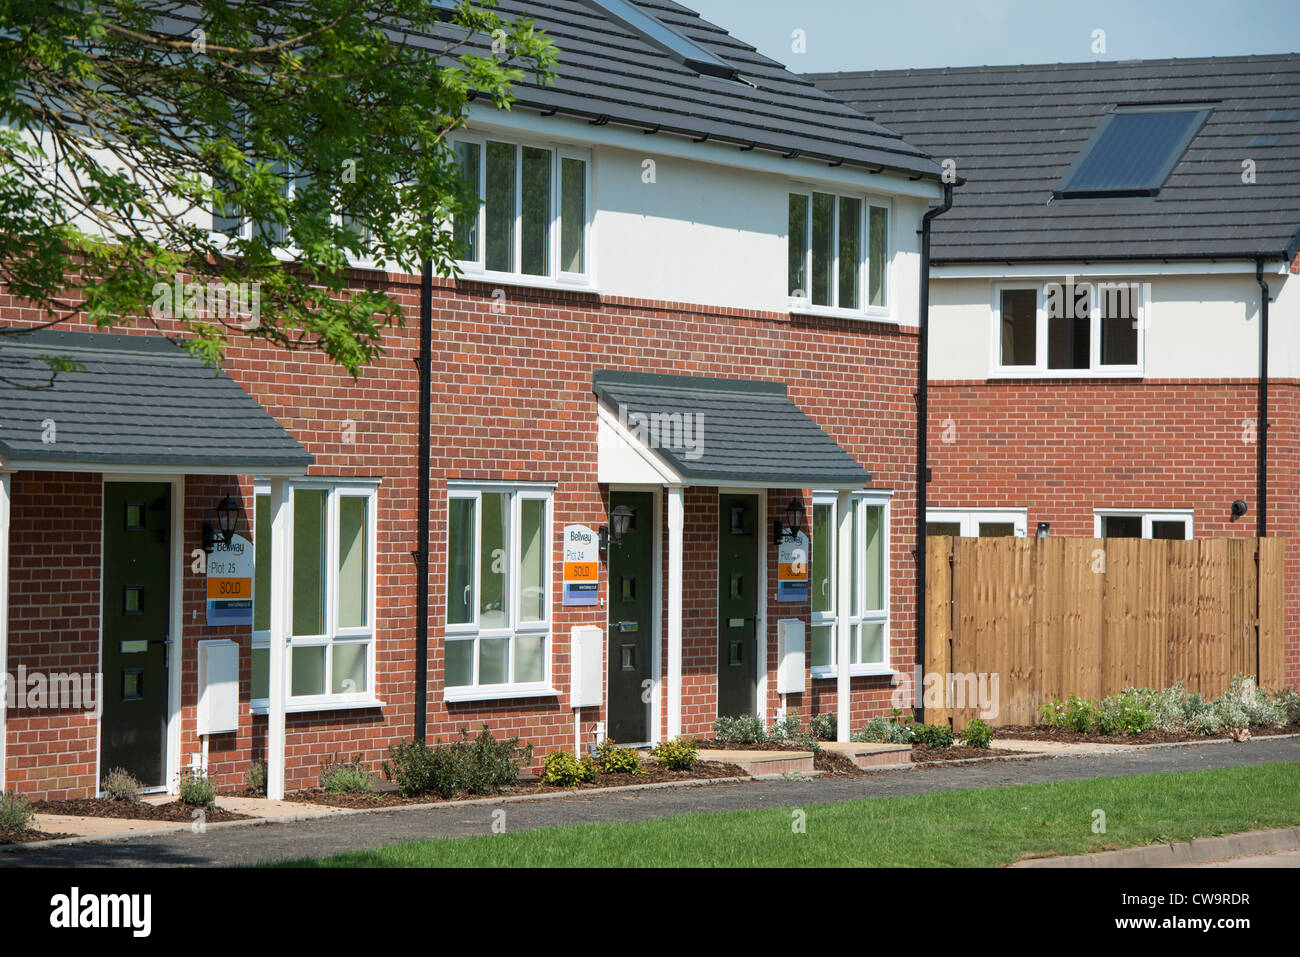 Housing in North Solihull. - Stock Image